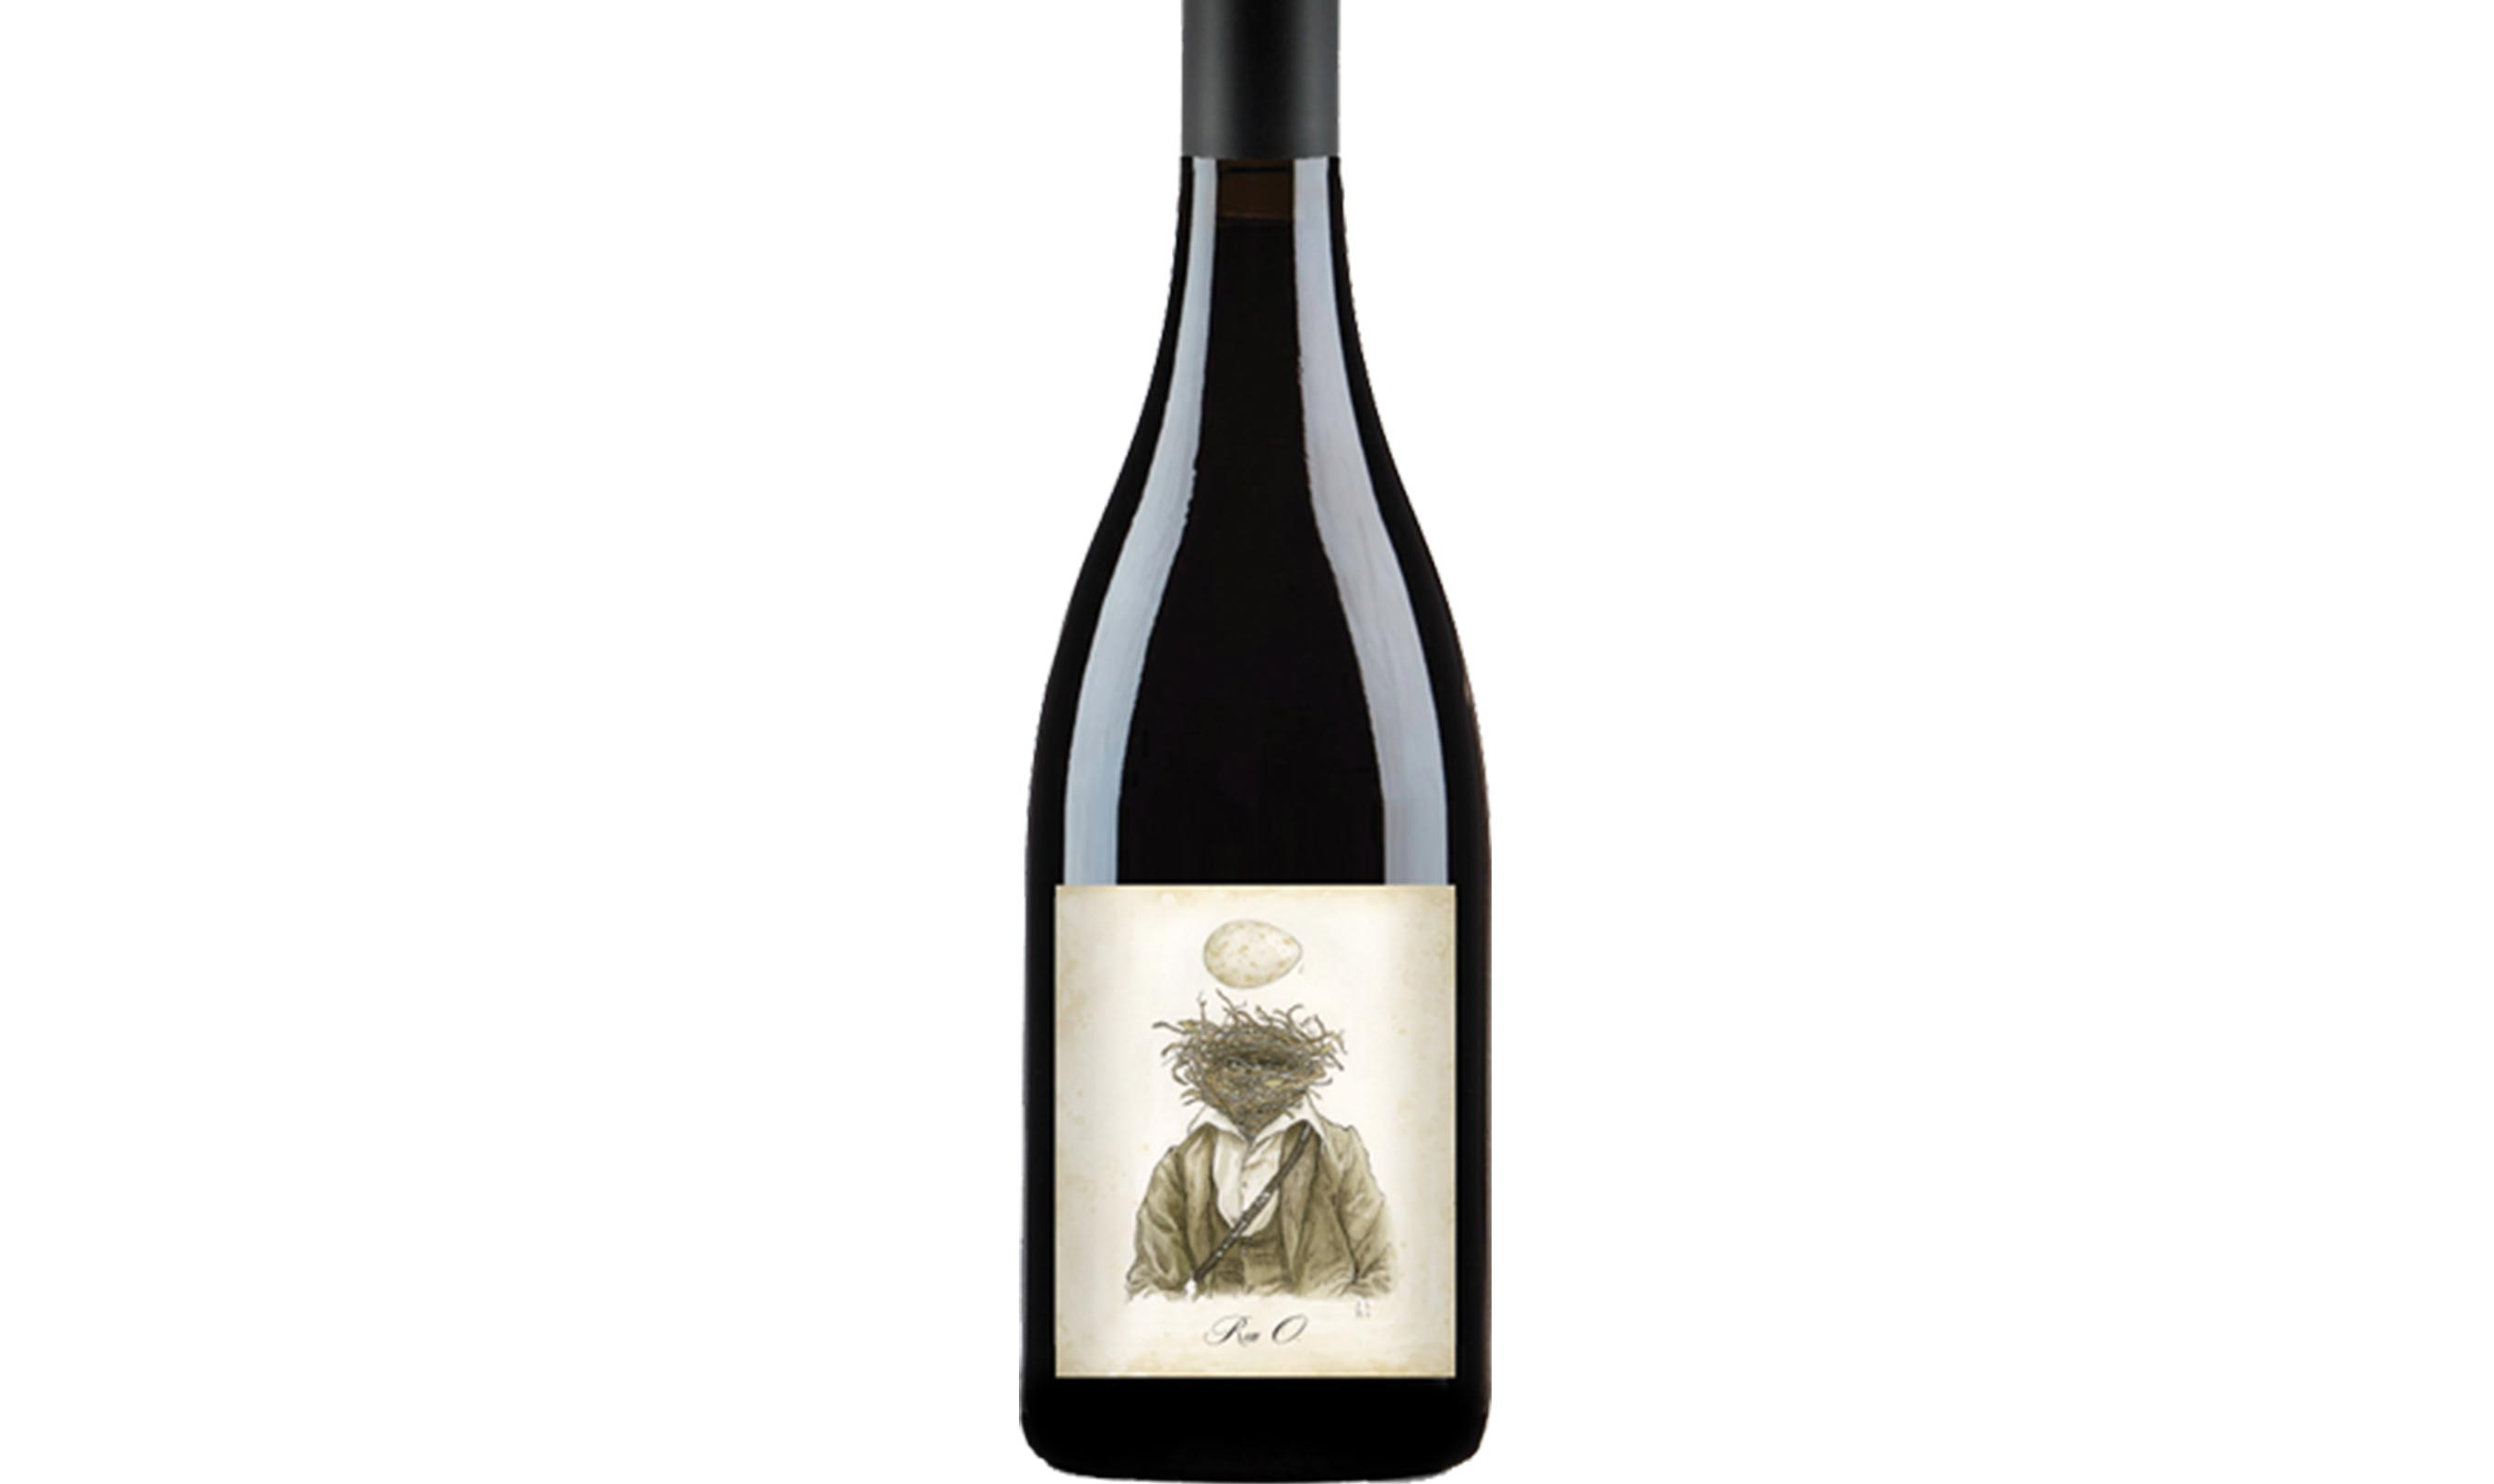 The Hatch Ross O 2016 is a cheerful, juicy red that features Pinot Noir and a jolt of Syrah